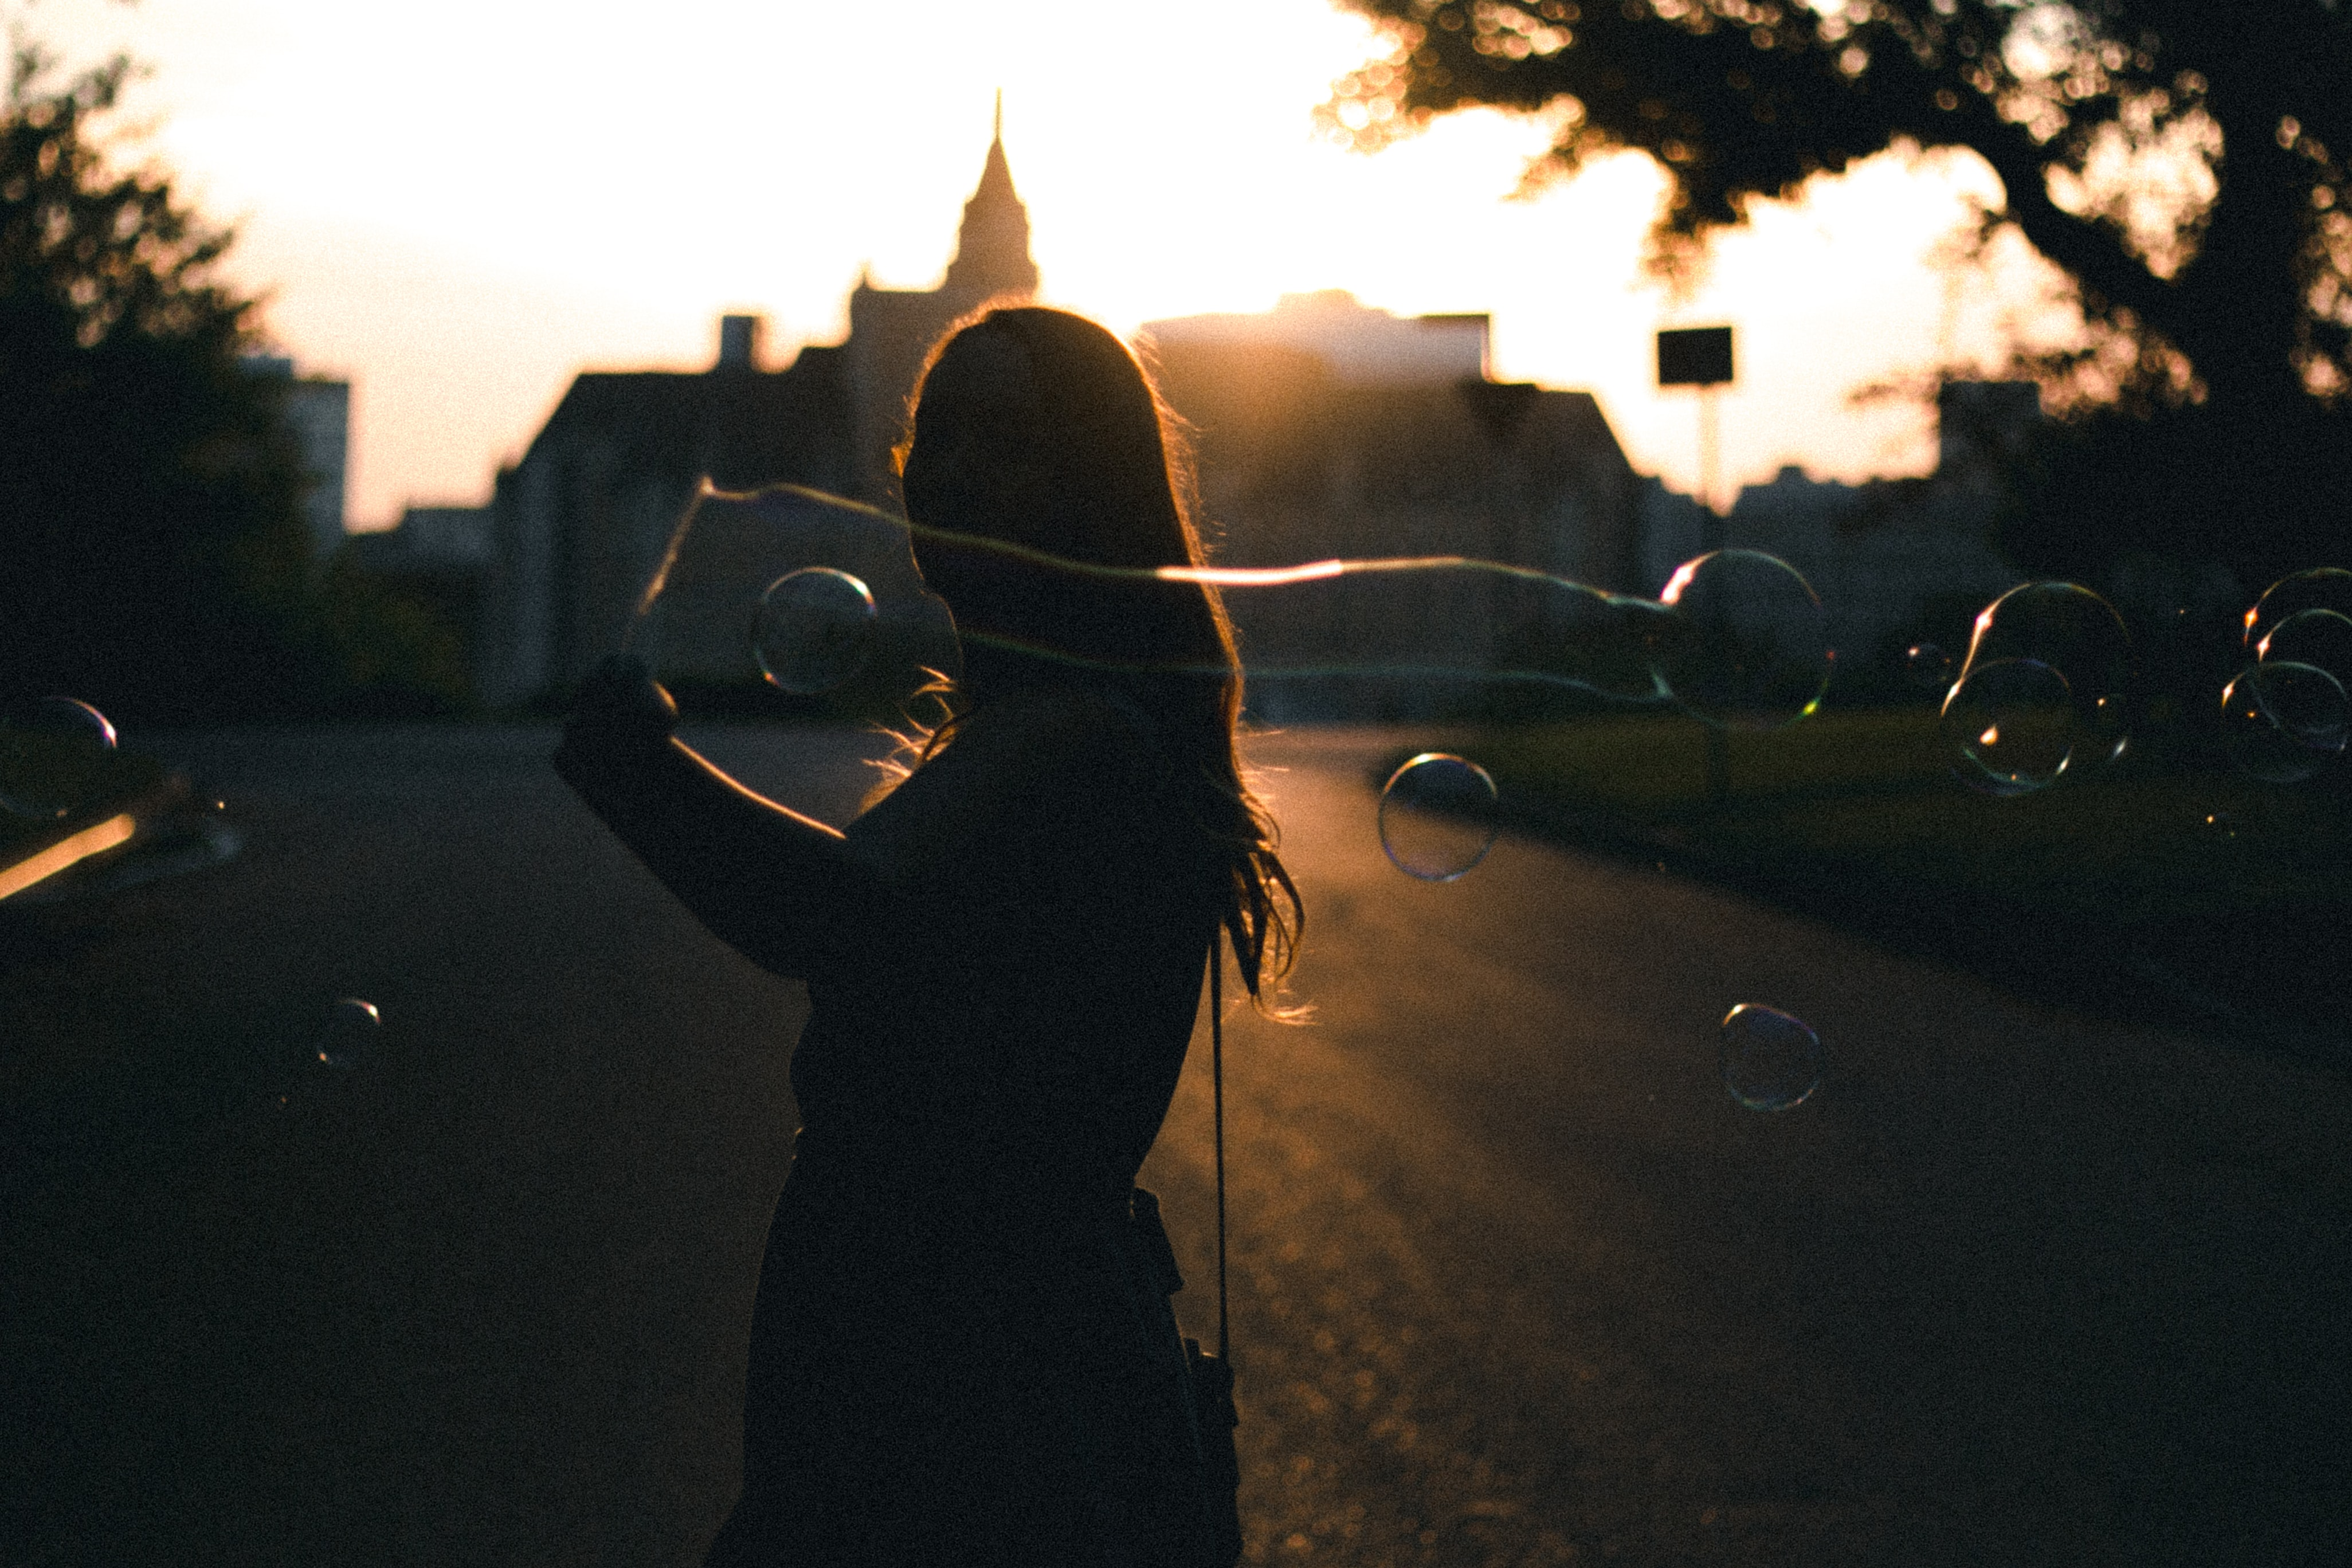 silhouette photo of woman holding bubbles near building during golden hour